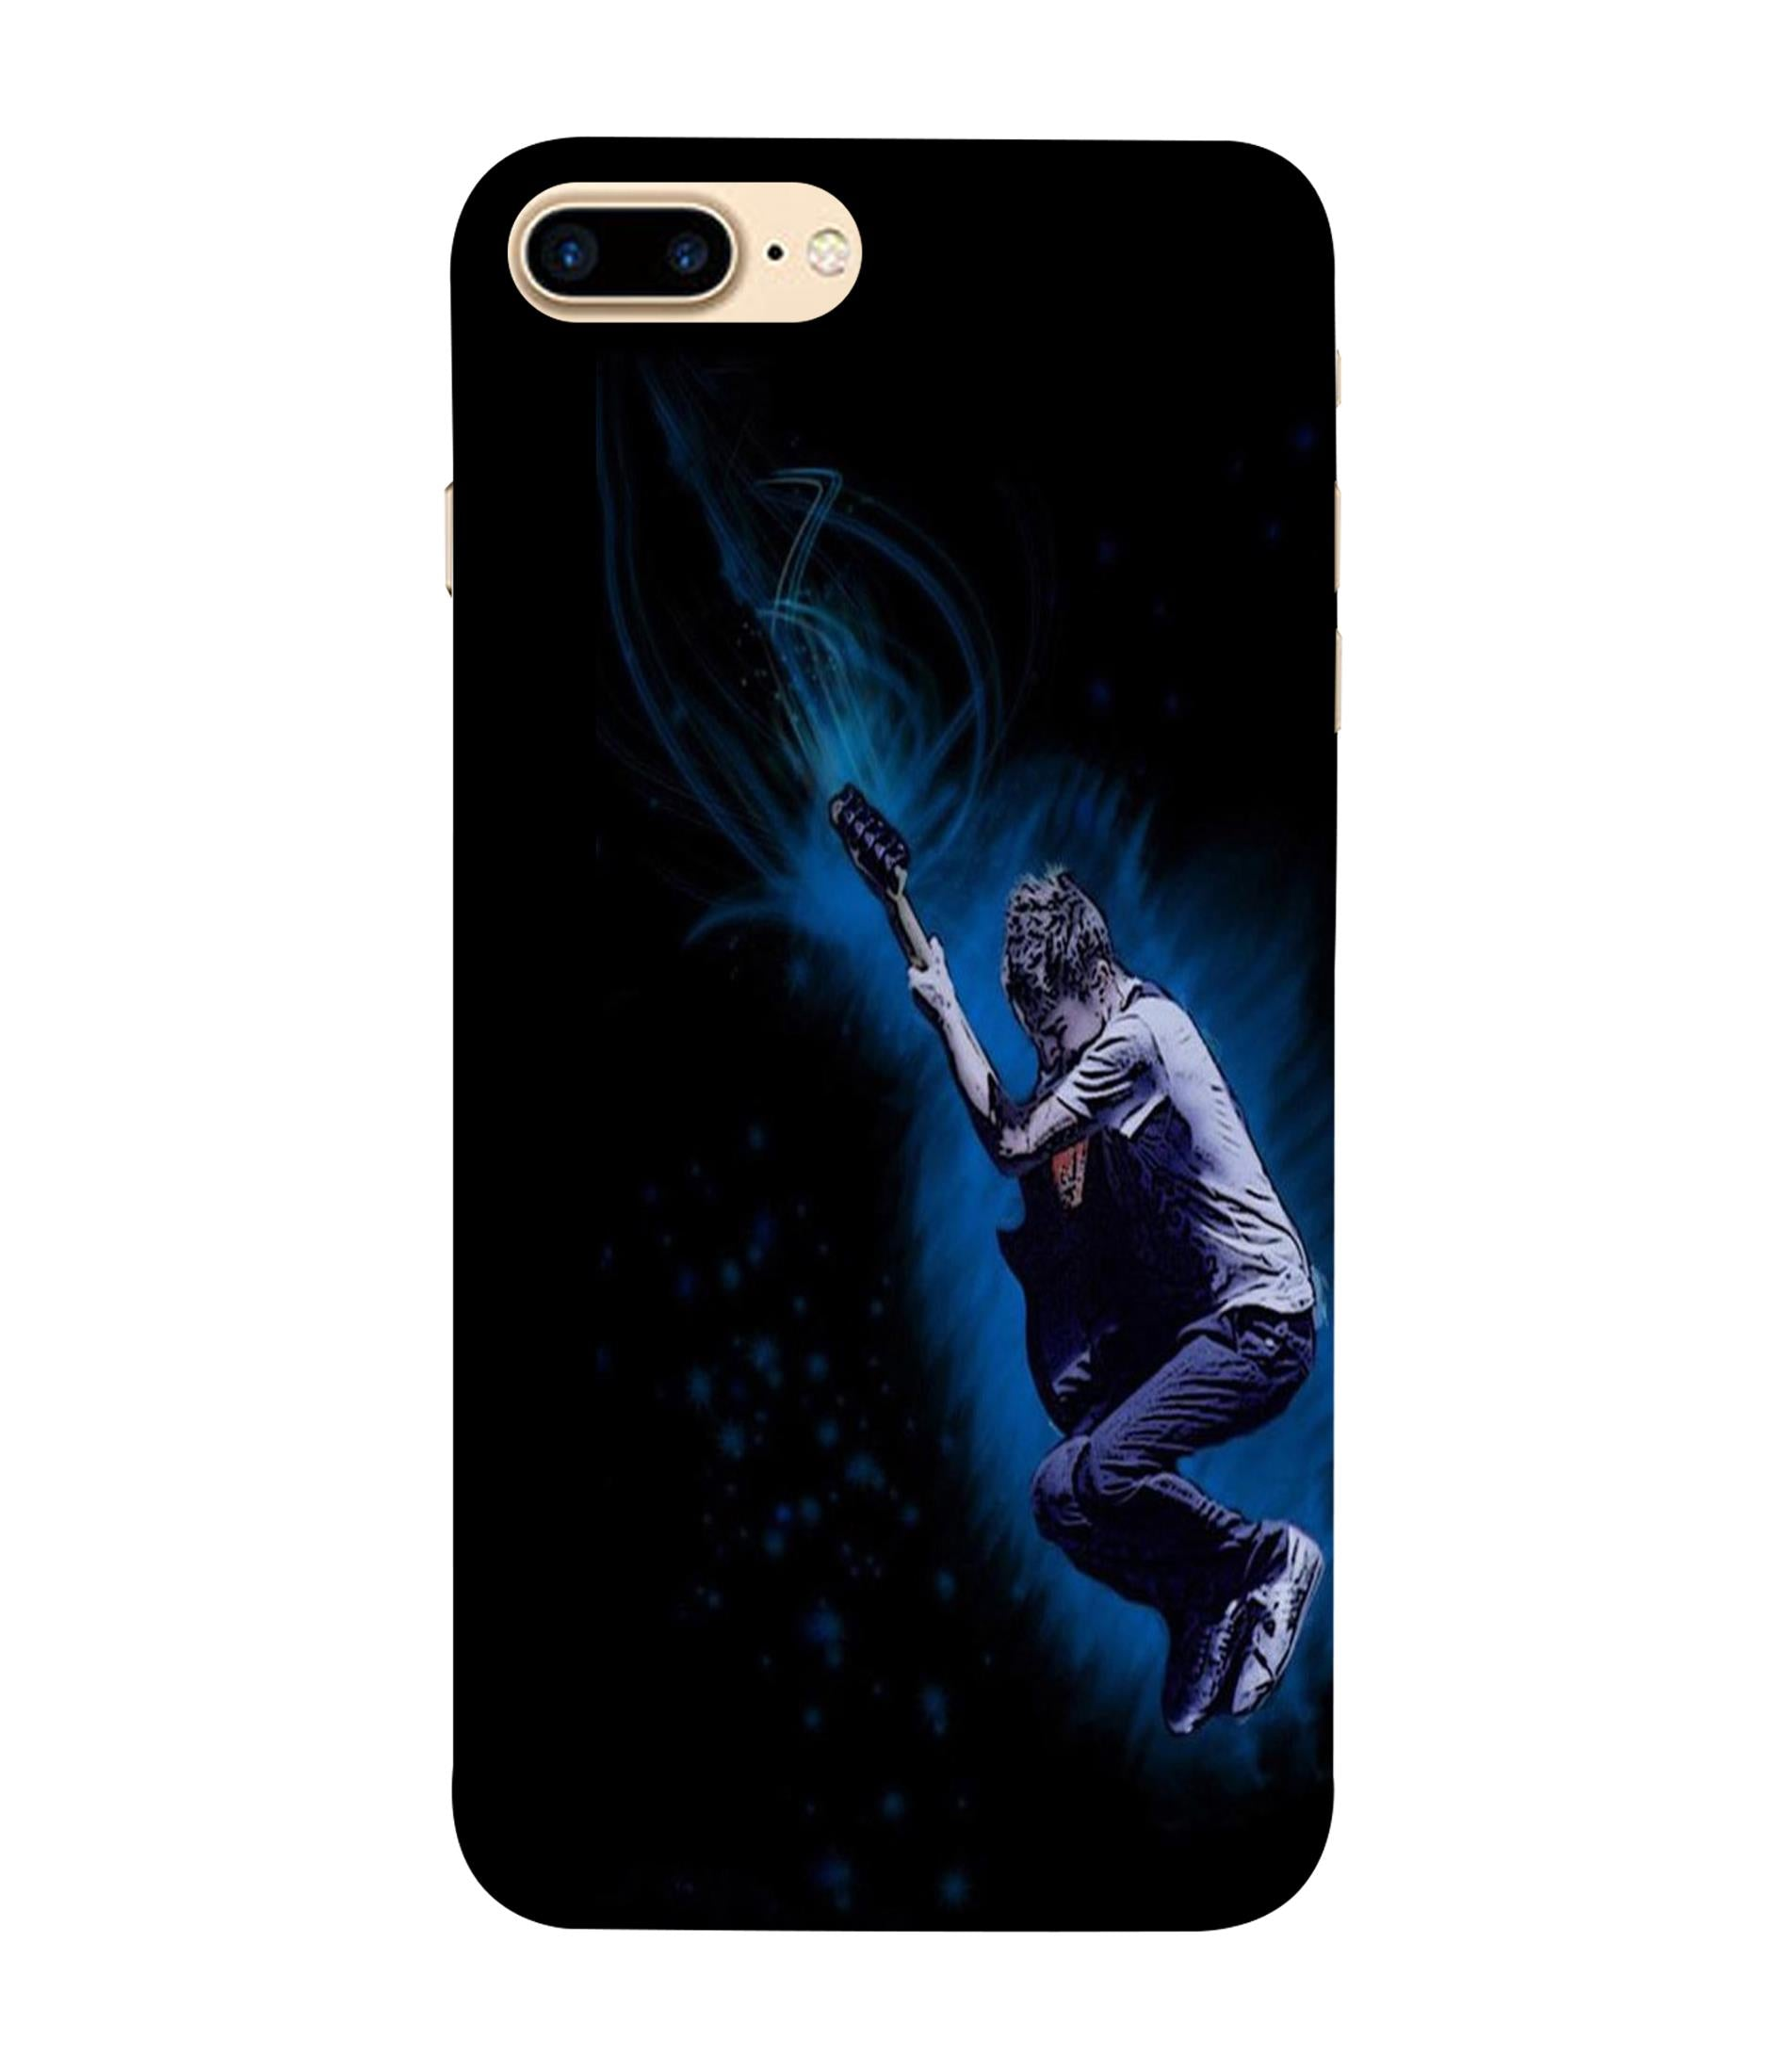 iPhone7 Plus Premium Styled Guitar Designed Back Cover